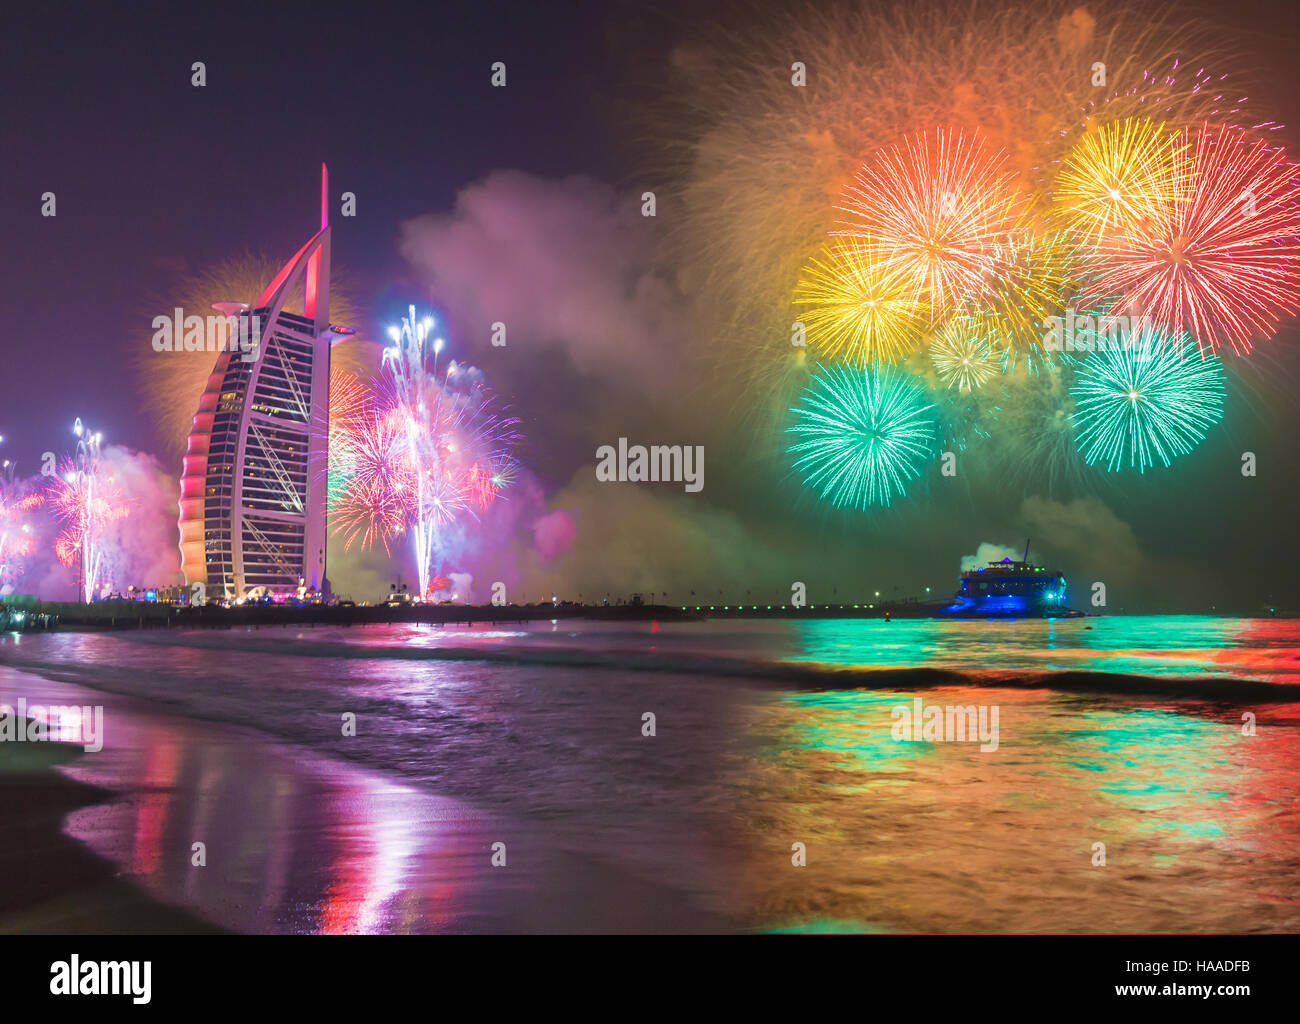 Burj Al Arab in Dubai Jumeirah Beach celebarating the new year eve - Stock Image